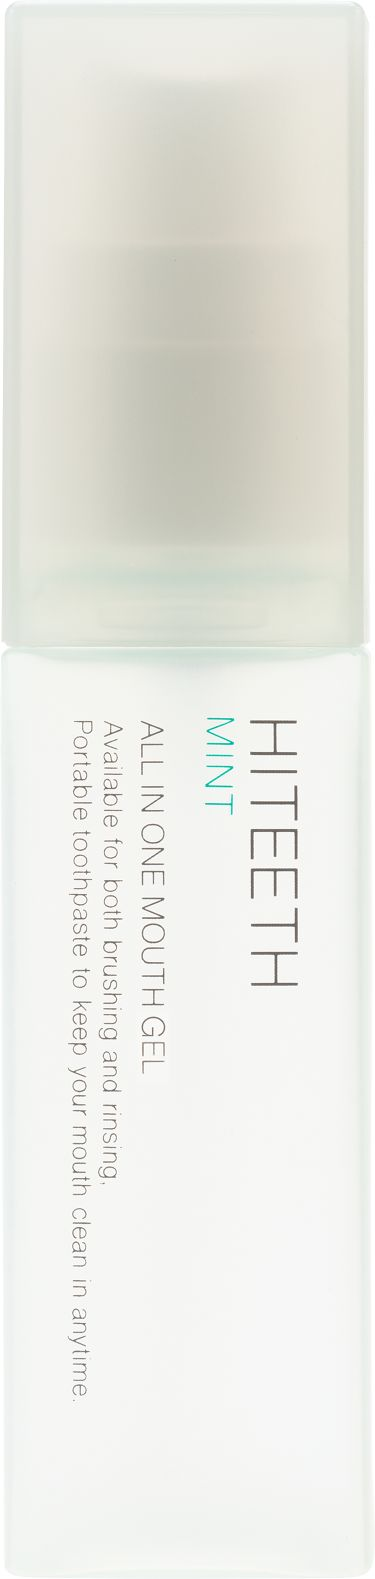 HITEETH ALL IN ONE MOUTH GEL / RBP